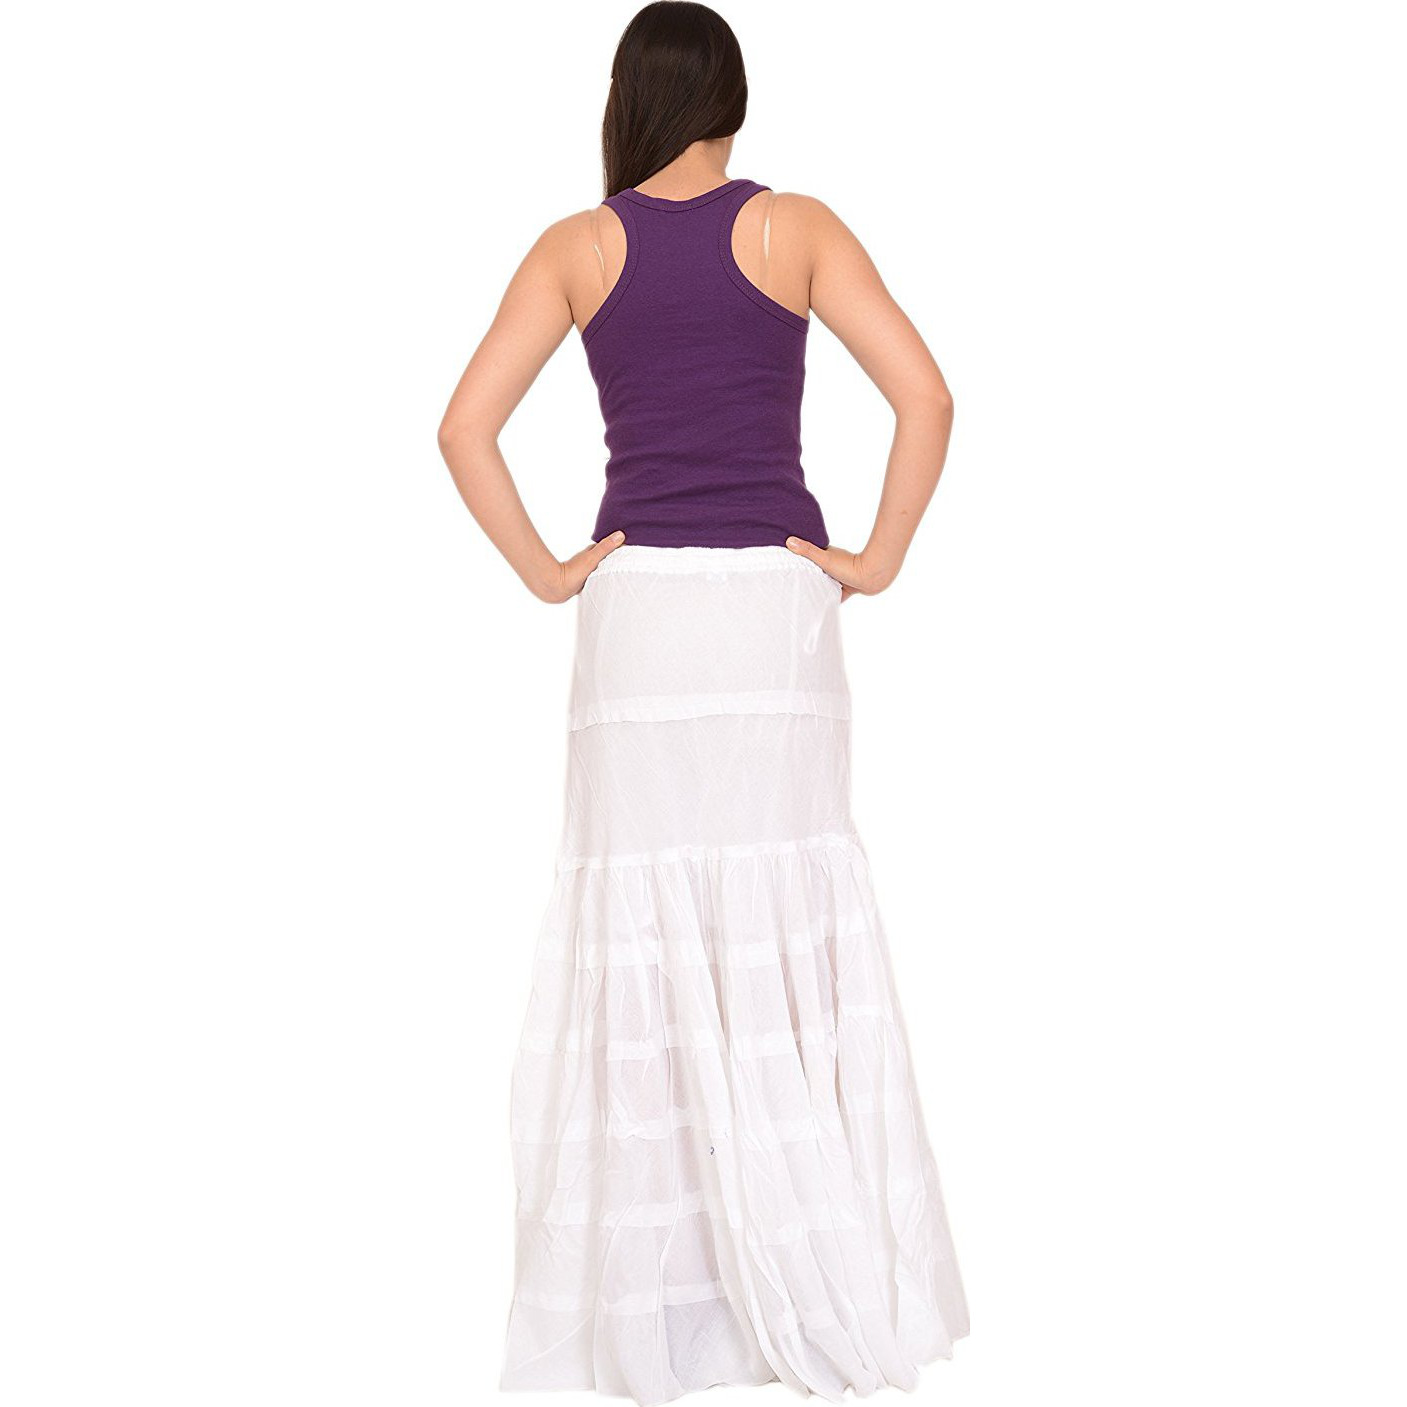 Sns Womens Cotton Bohemian Long White Maxi A-Lined Skirt